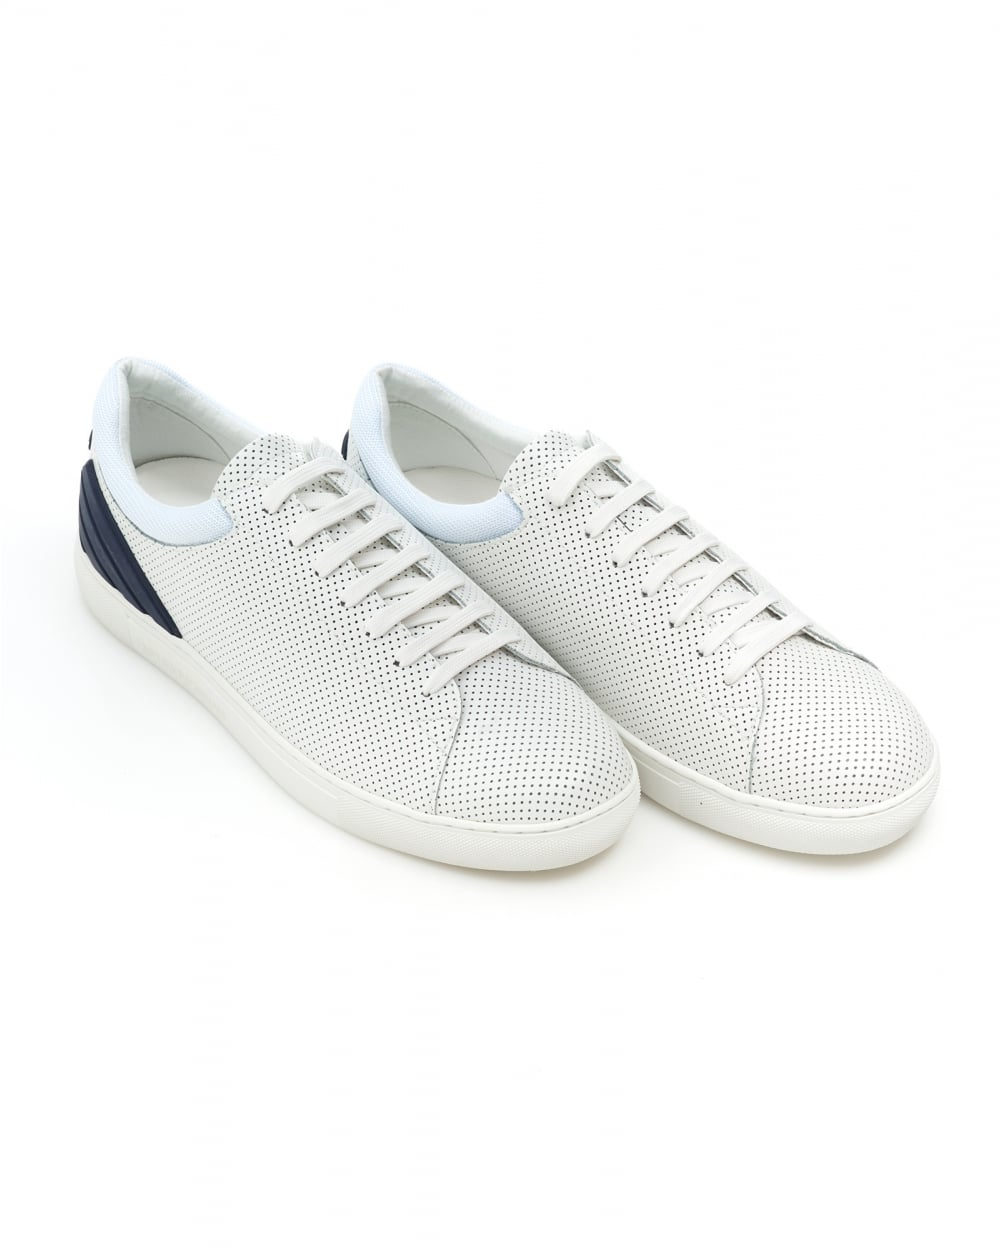 bd6957389 Emporio Armani Mens Perforated Trainers